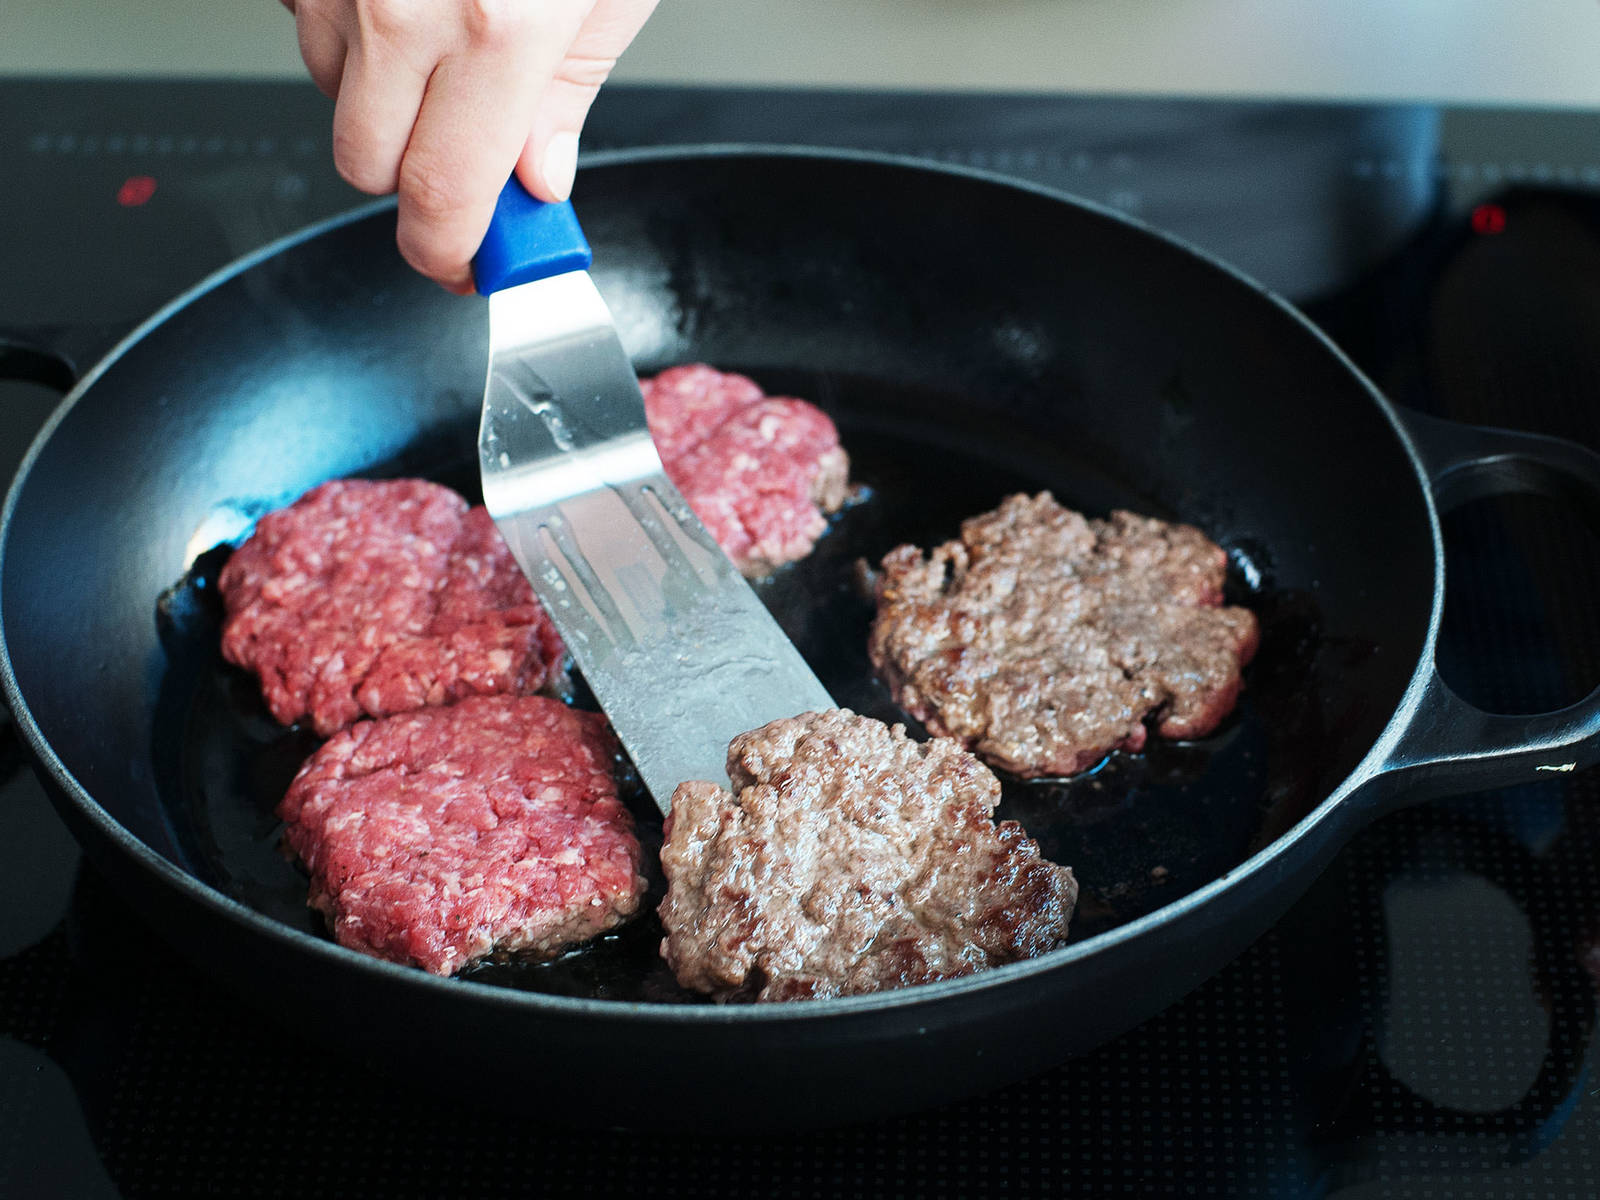 Form 6 equal-sized patties and cook in a frying pan greased with oil over medium-high heat for approx. 3 – 5 min., or until browned on each side and cooked through.